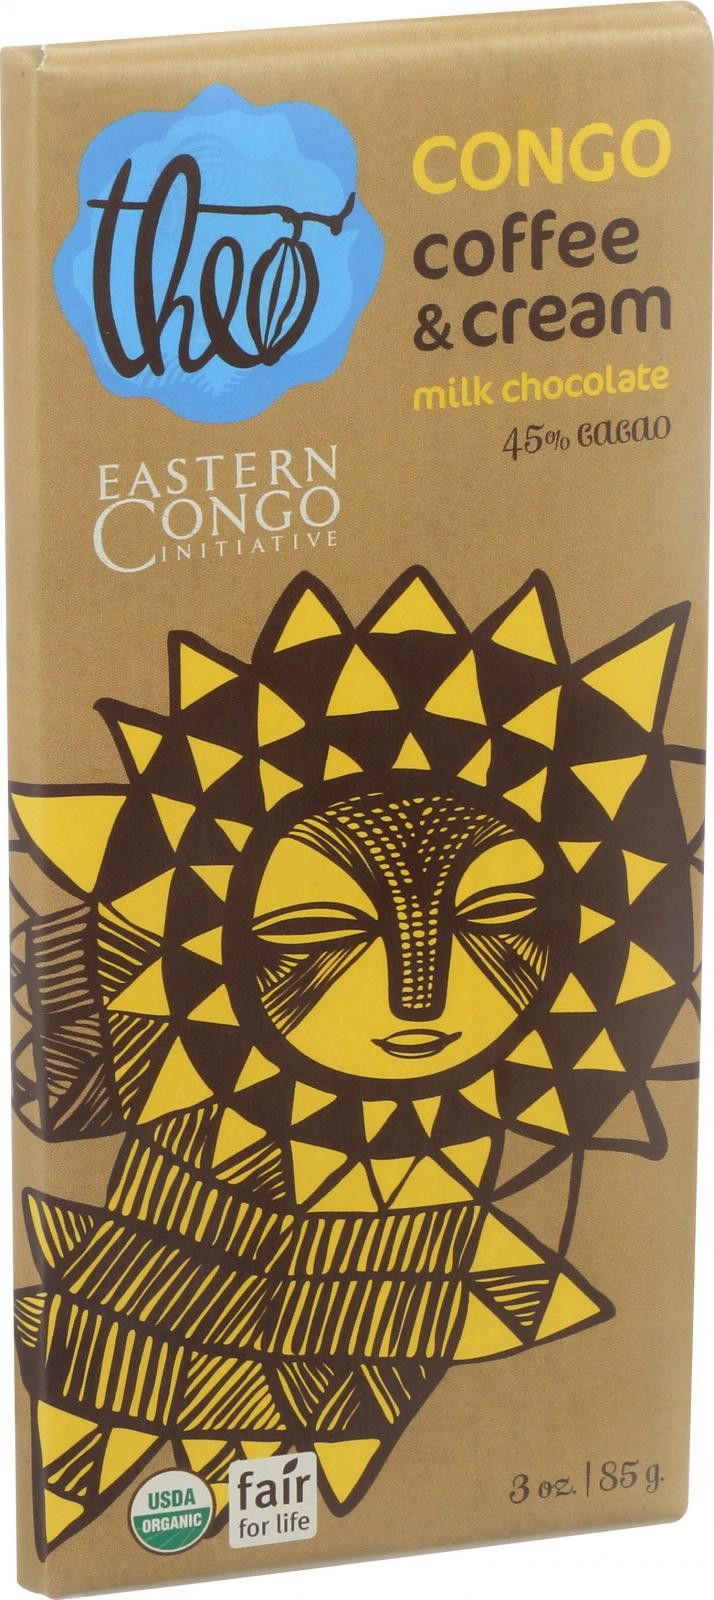 Theo Chocolate Organic Chocolate Bar - Partner - Milk Chocolate - 45 Percent Cacao - Congo ECI Coffee and Cream - 3 oz Bars - Case of 12